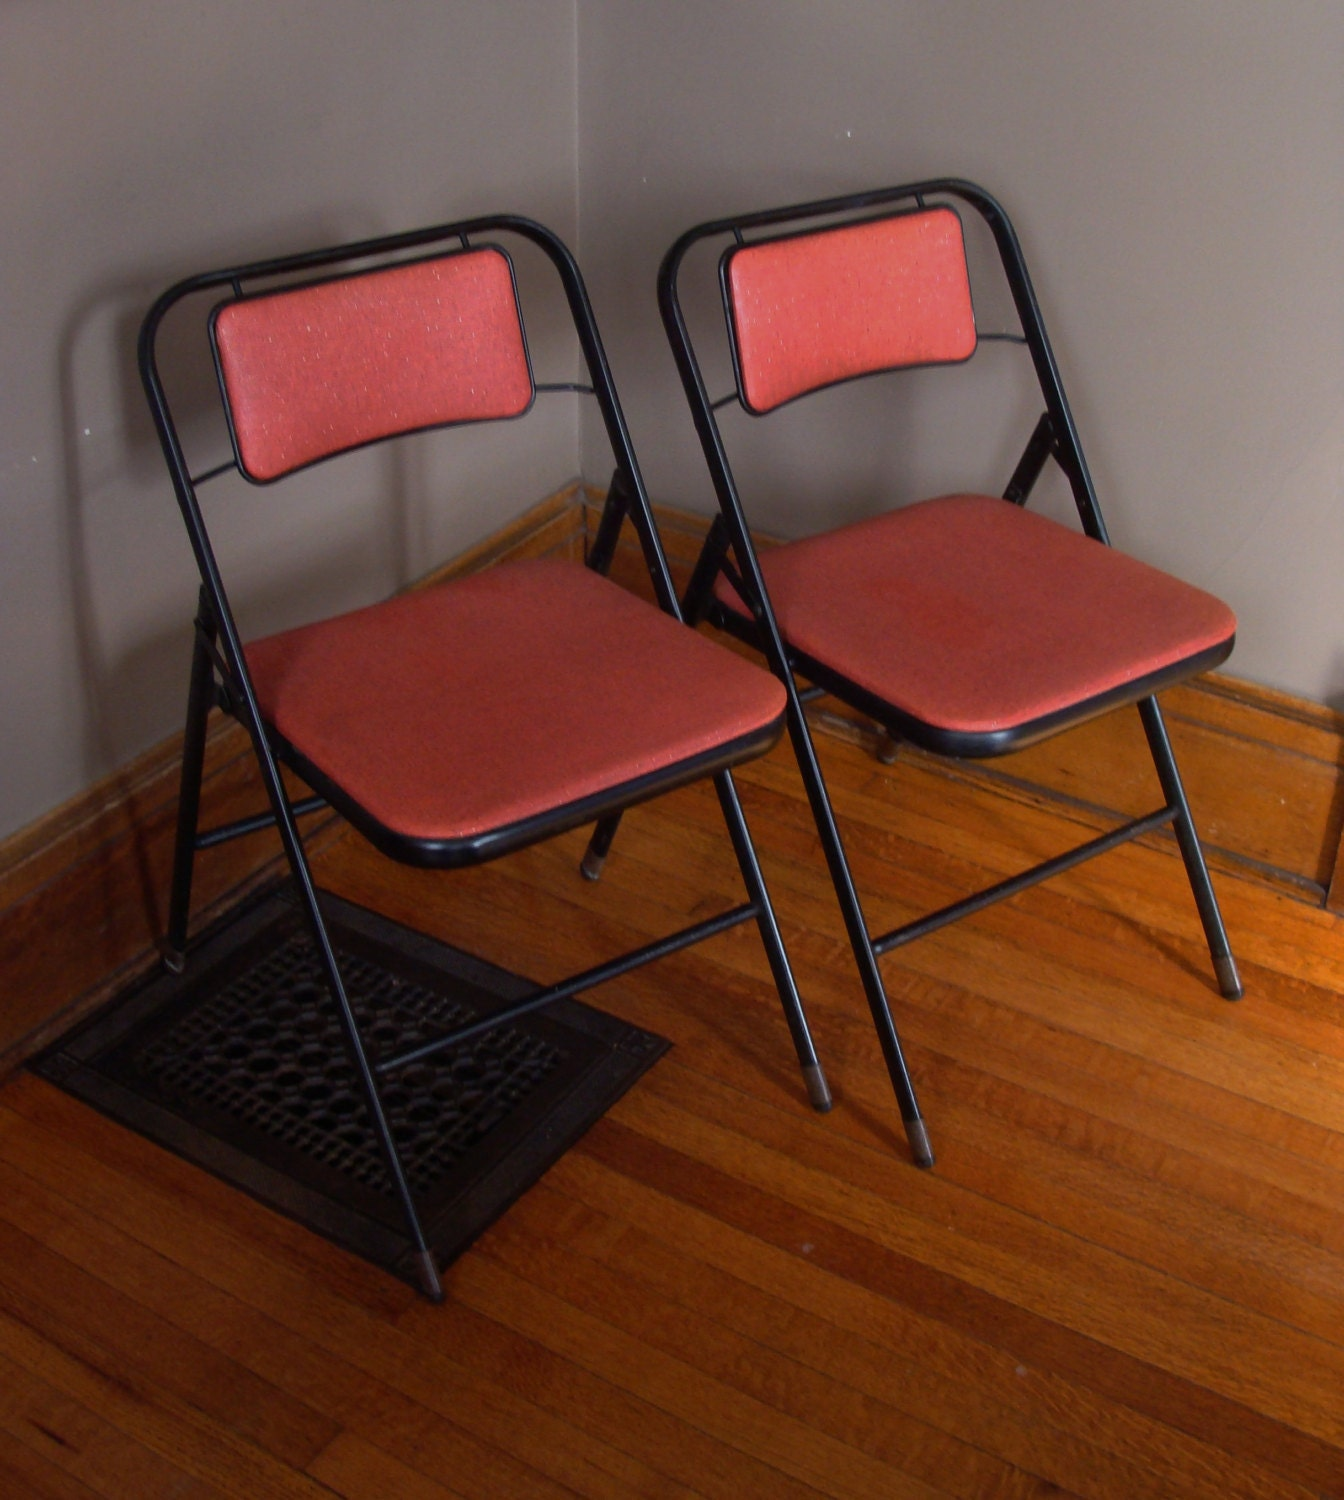 Vintage Metal Folding Chairs Card Table Chairs Samsonite